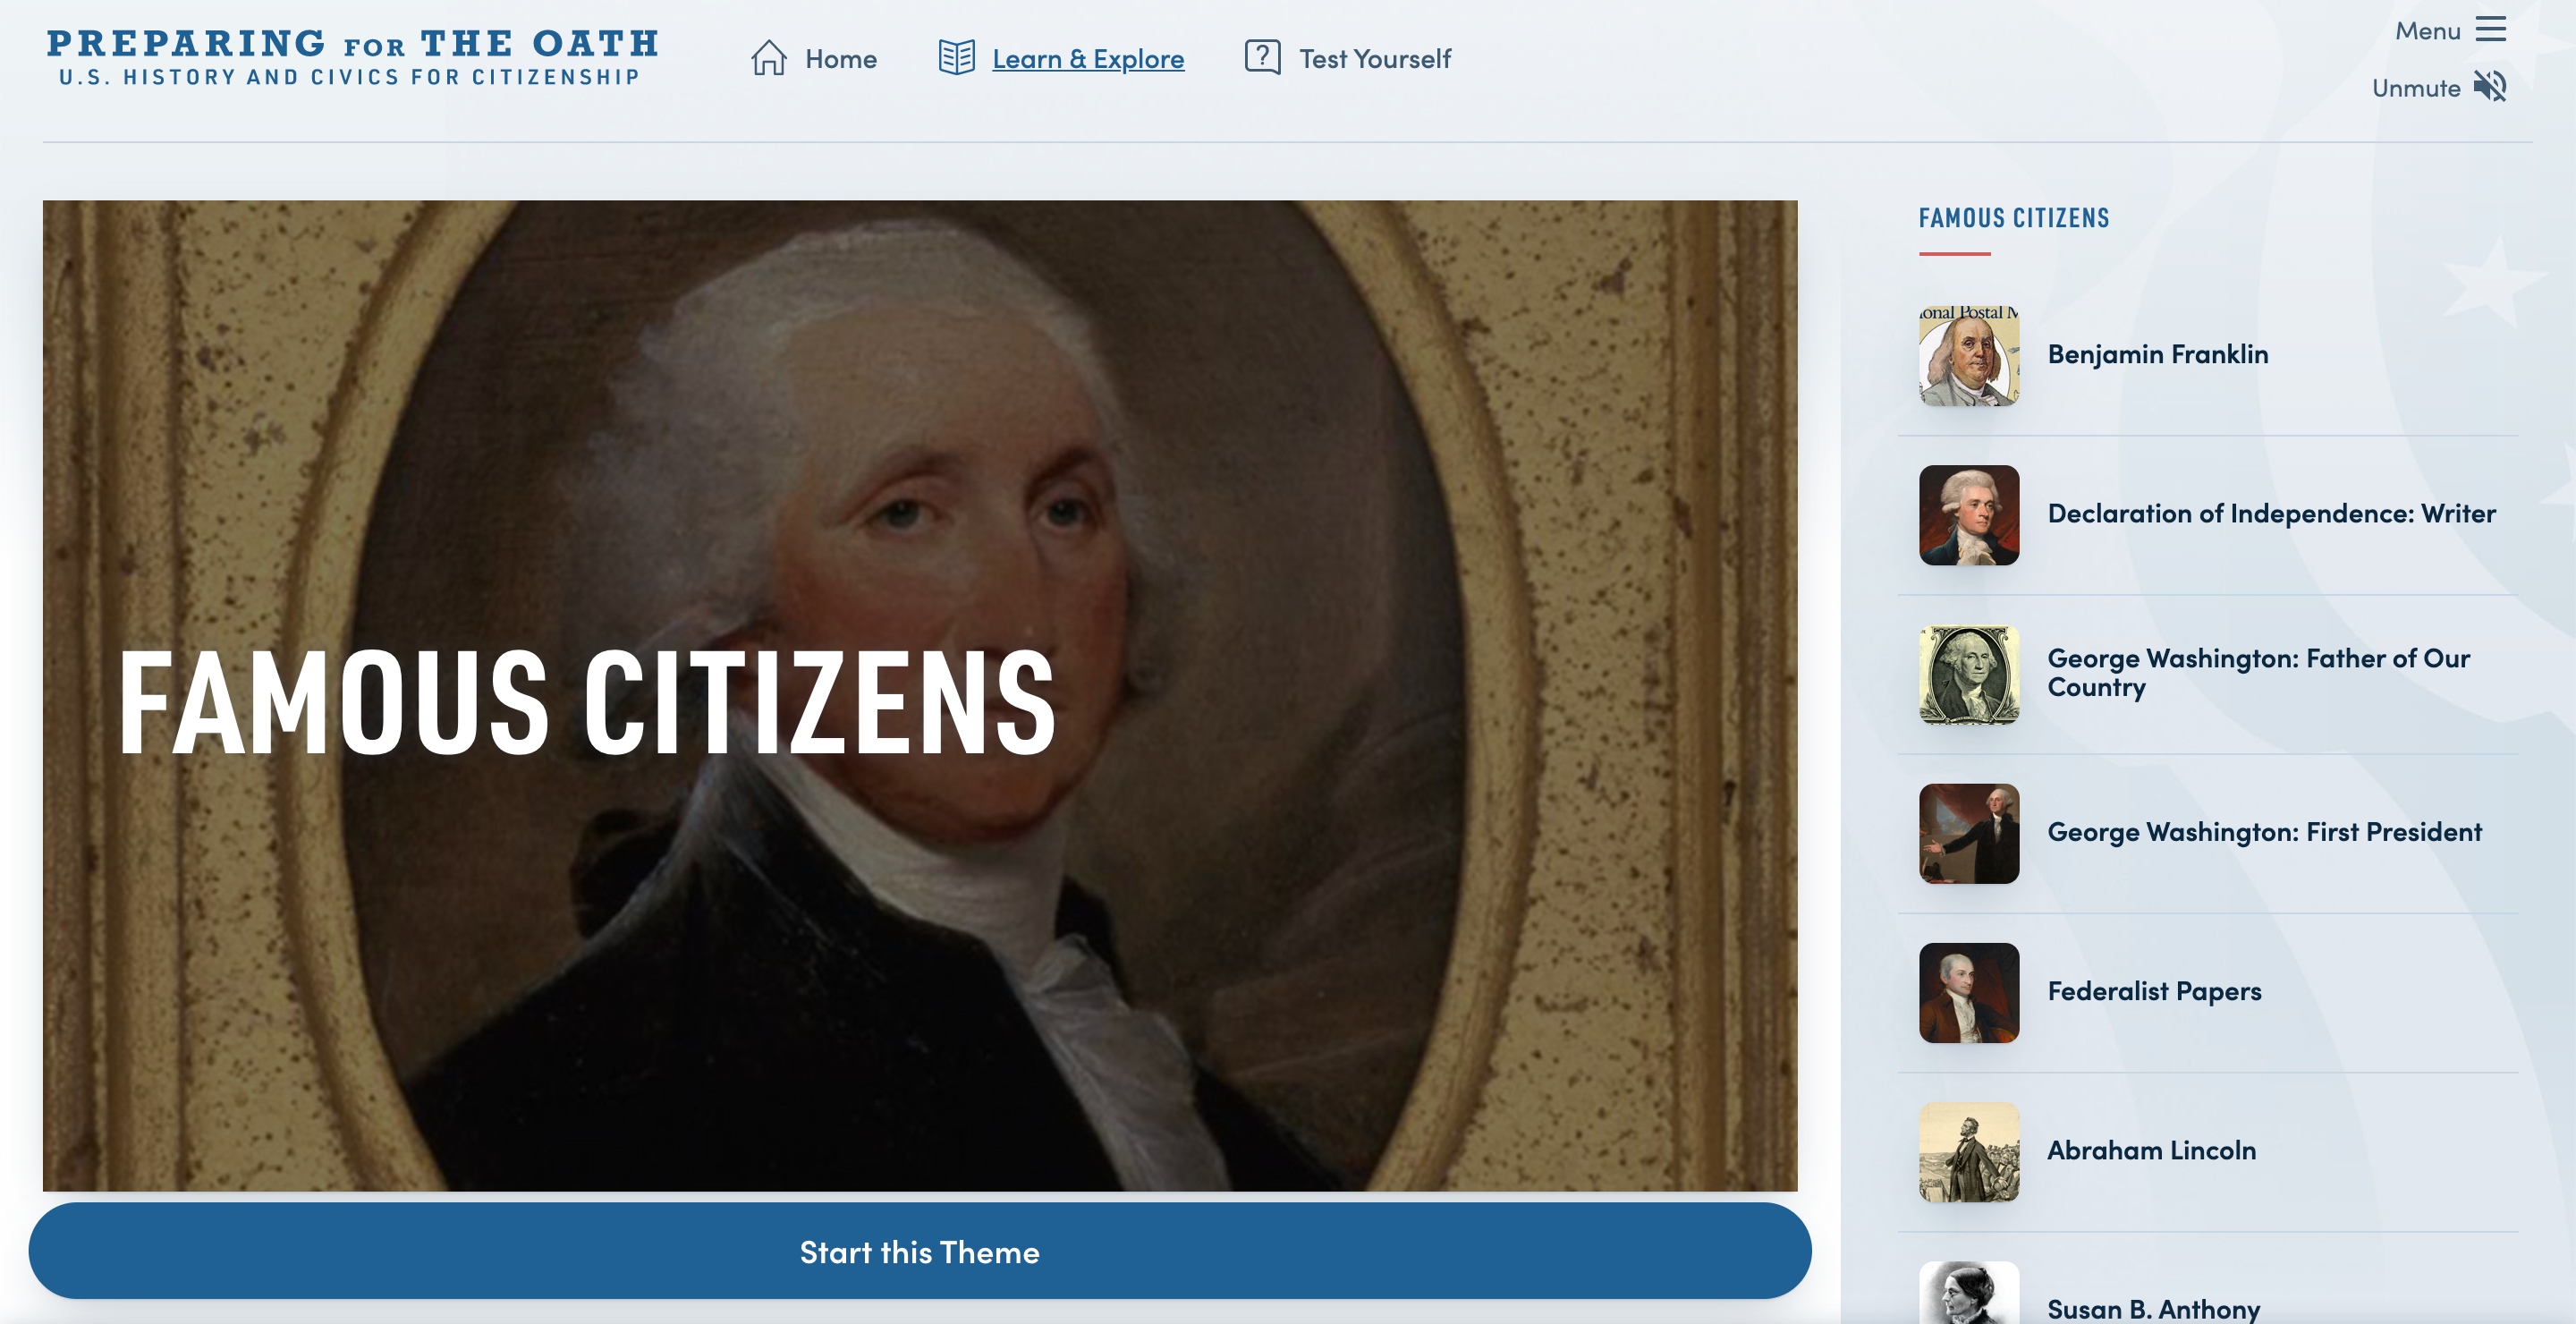 Thumbnail image of Preparing for the Oath: Famous Citizens resource